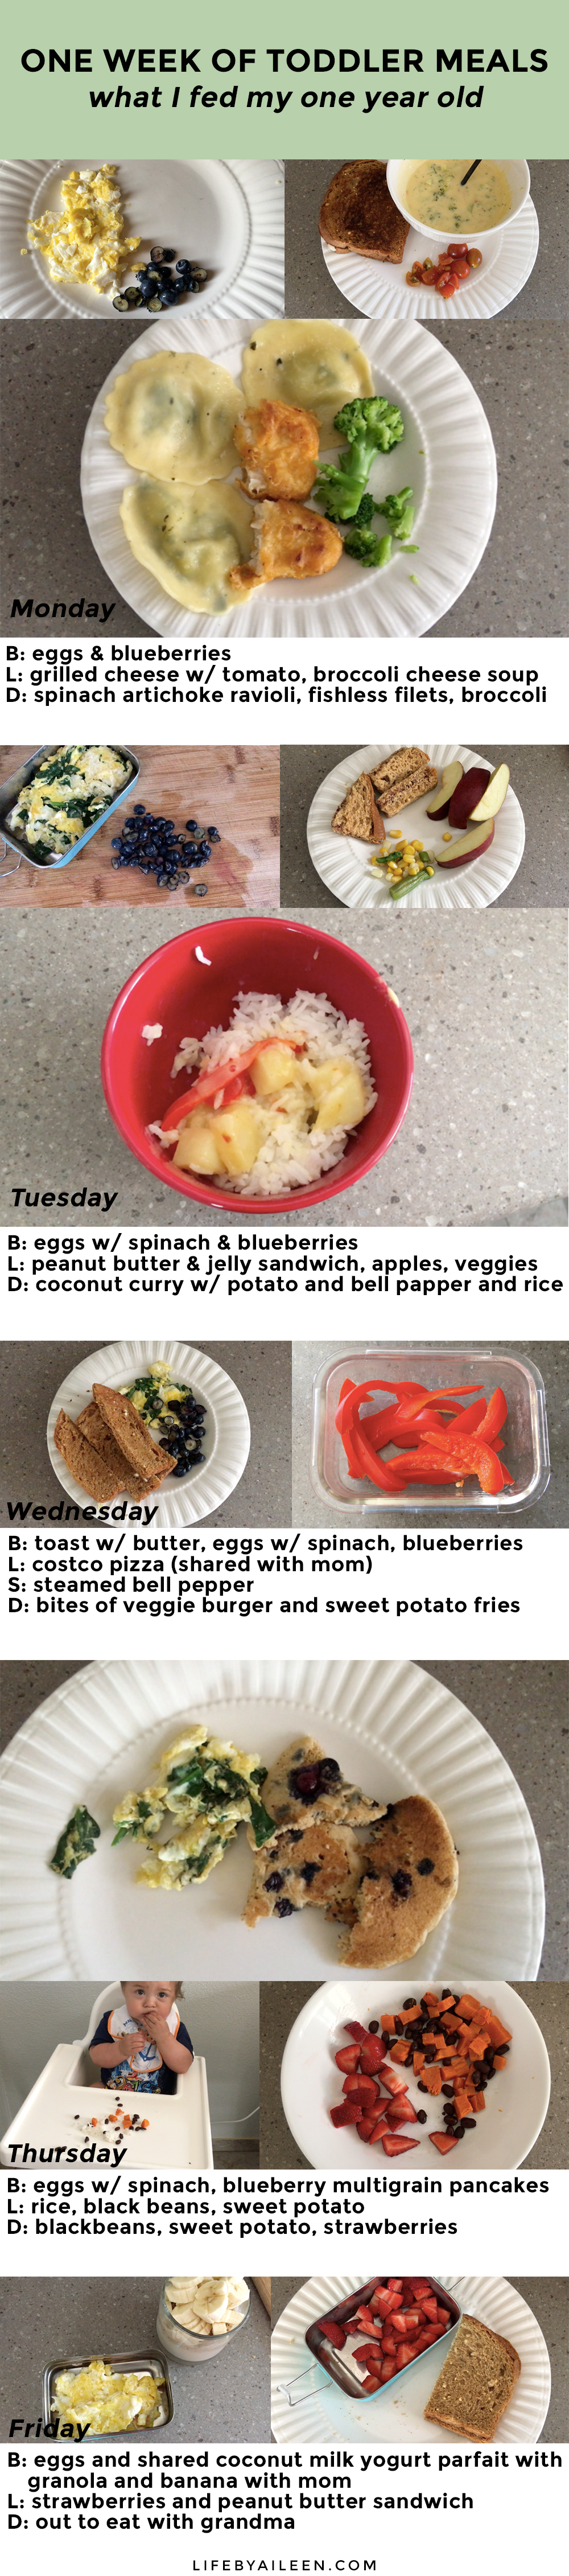 What i fed my 1 year old toddler in a week aileen barker ps if you want to know what i ate along with what i fed my son check out the video at the bottom of the post where i included my meals too forumfinder Choice Image